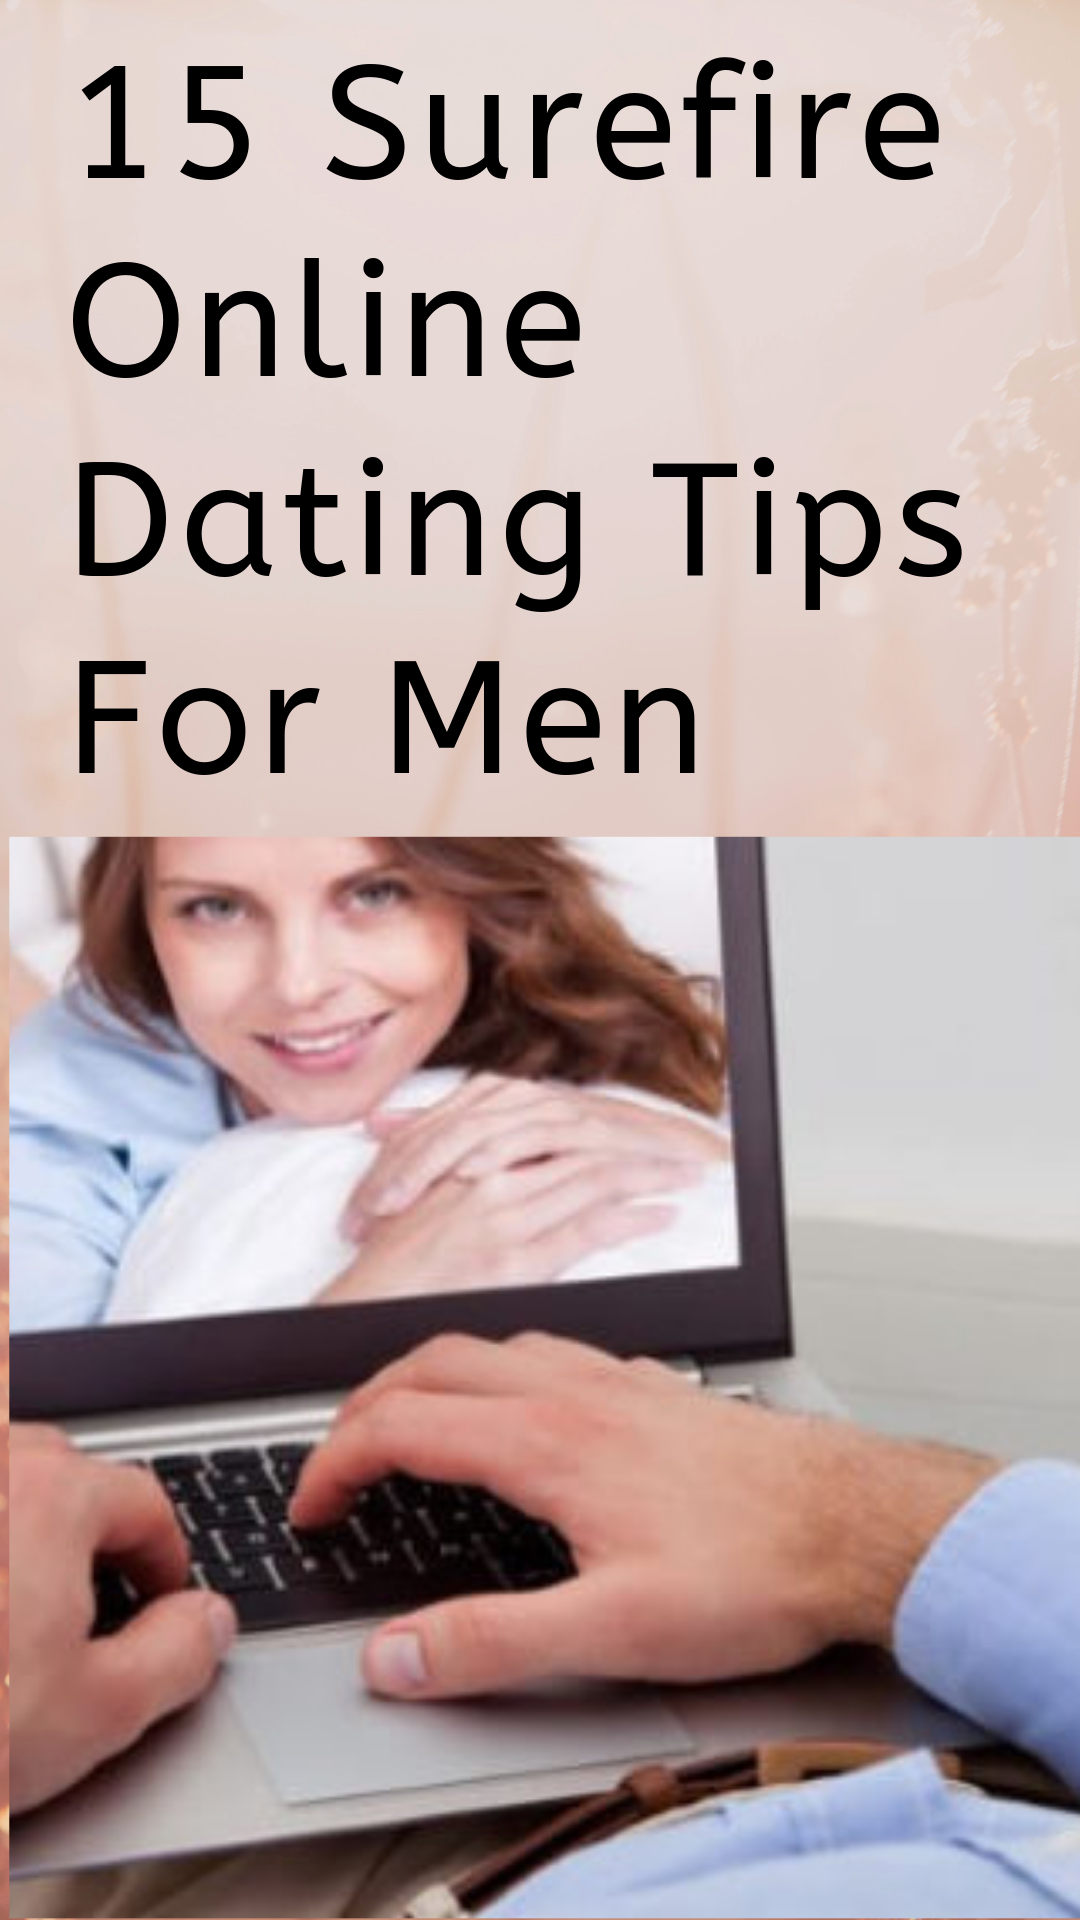 online dating tips for girls online without education